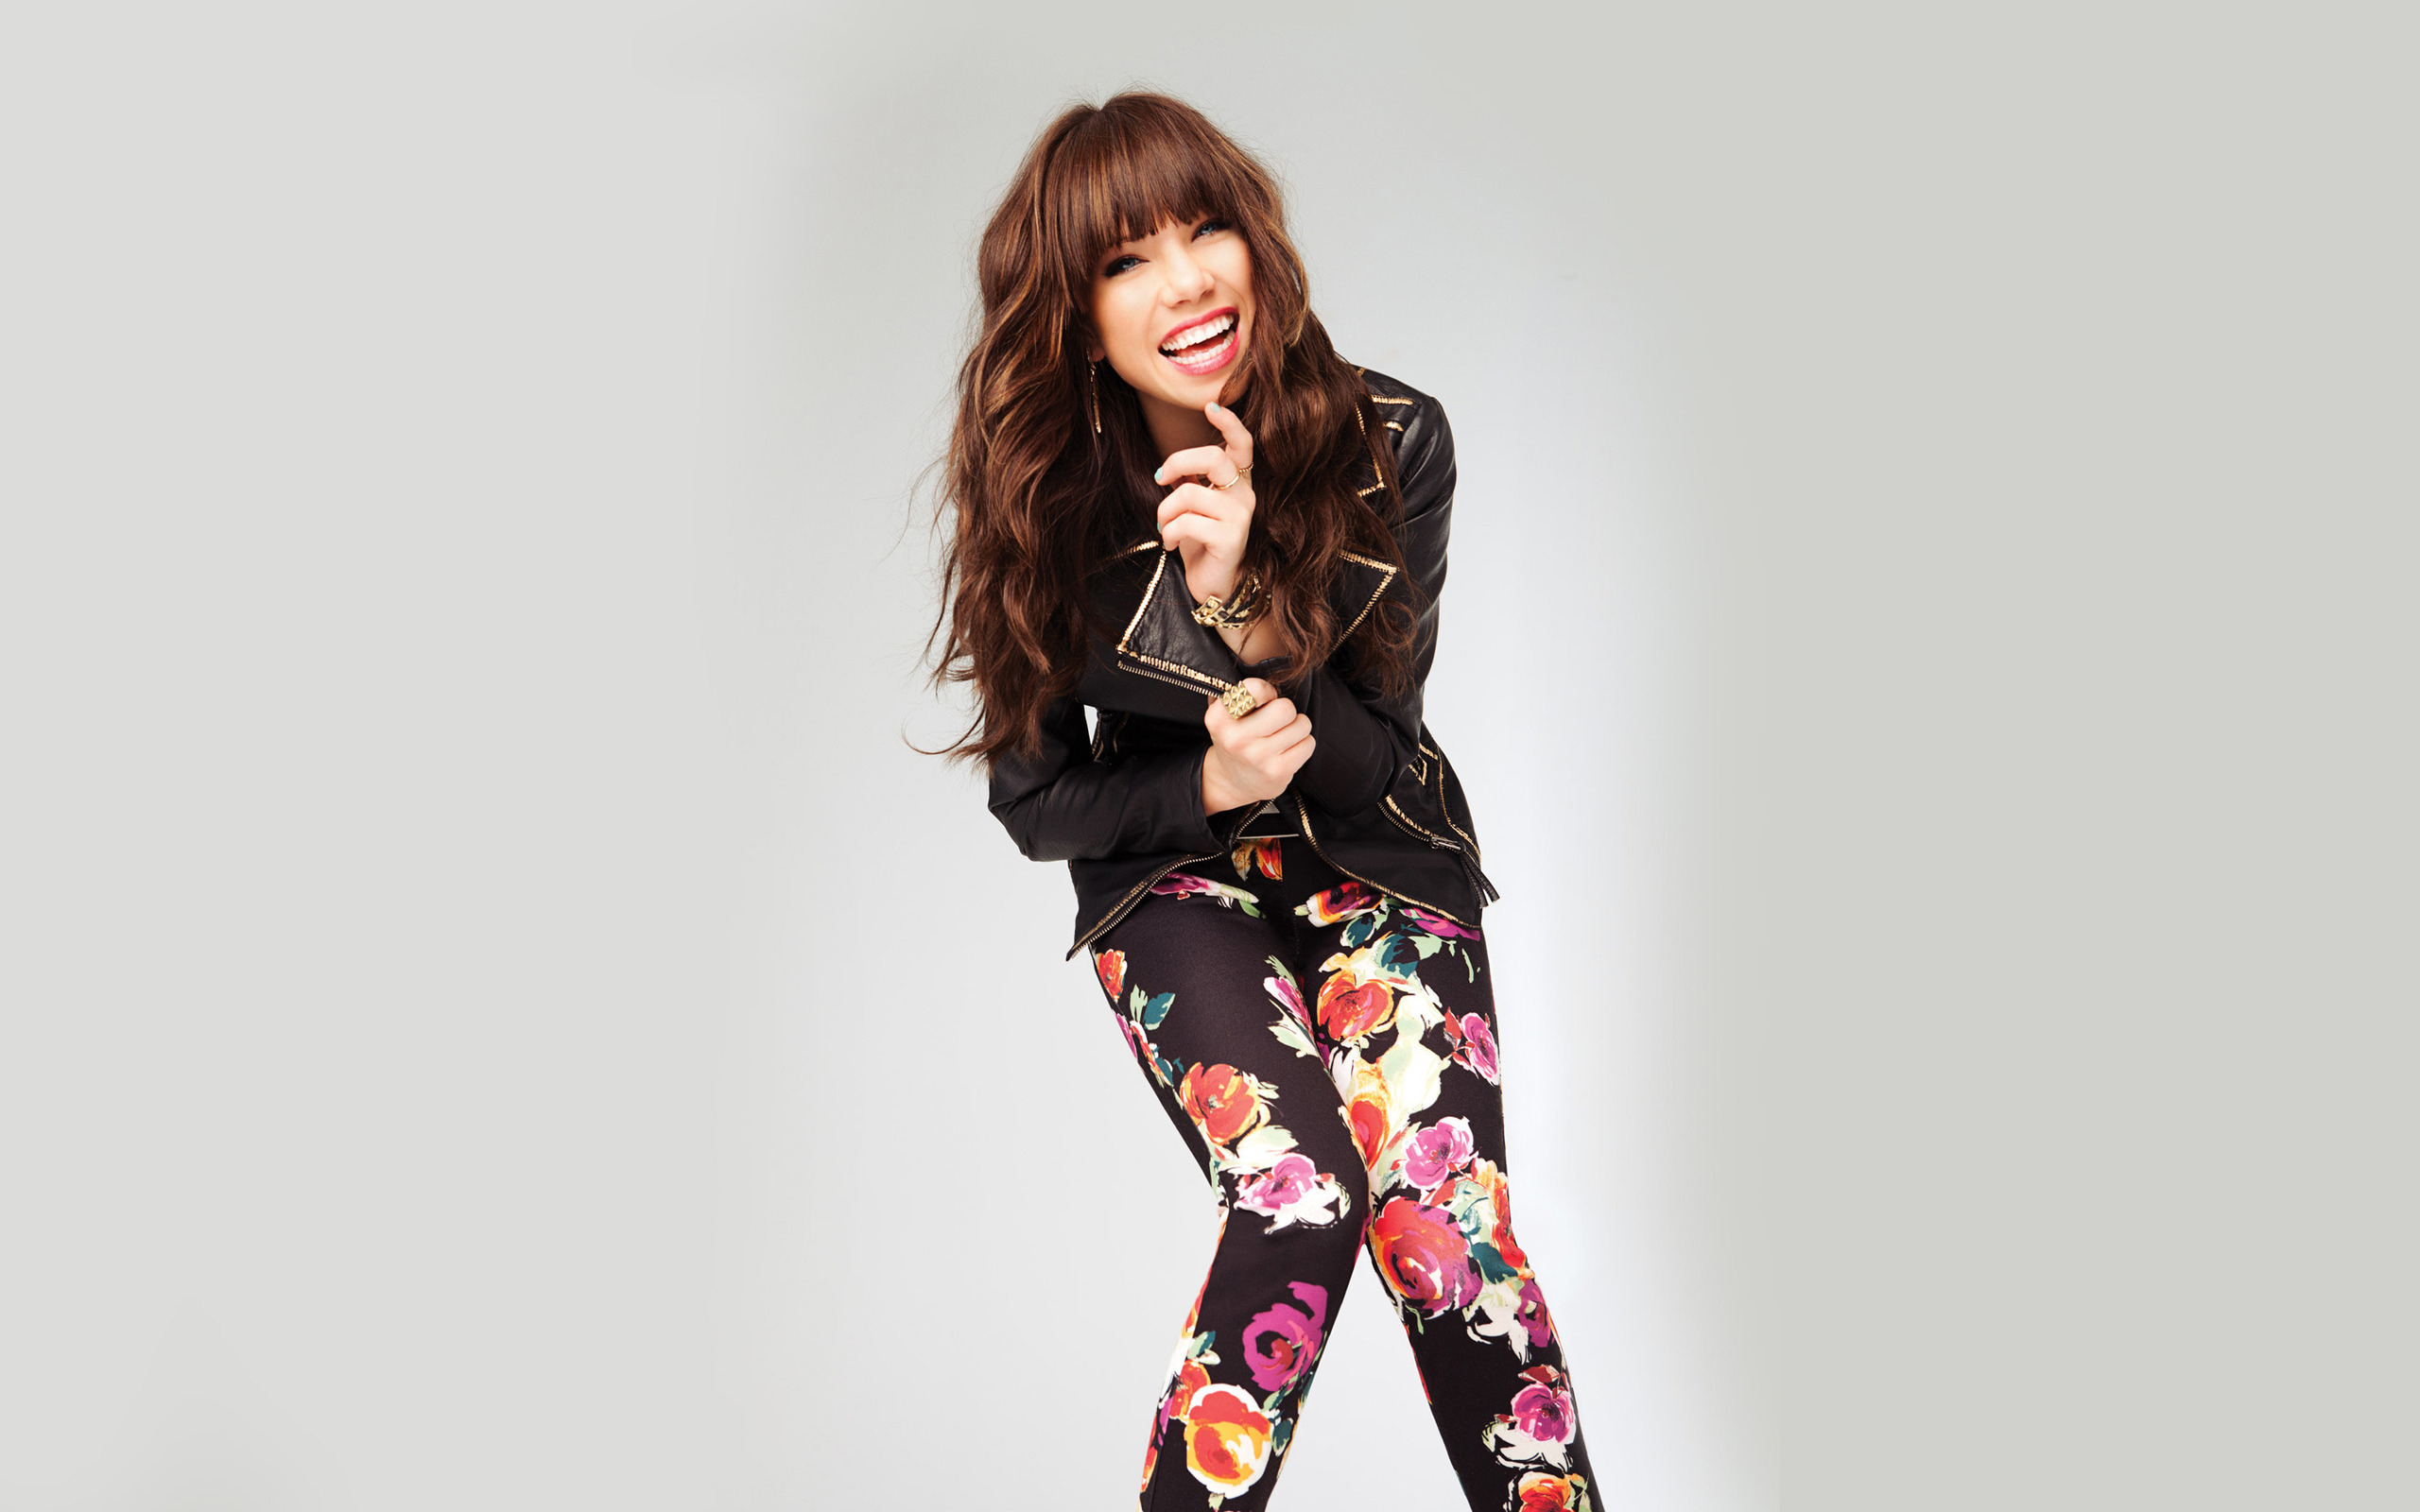 beautiful carly rae jepsen wallpaper 20922